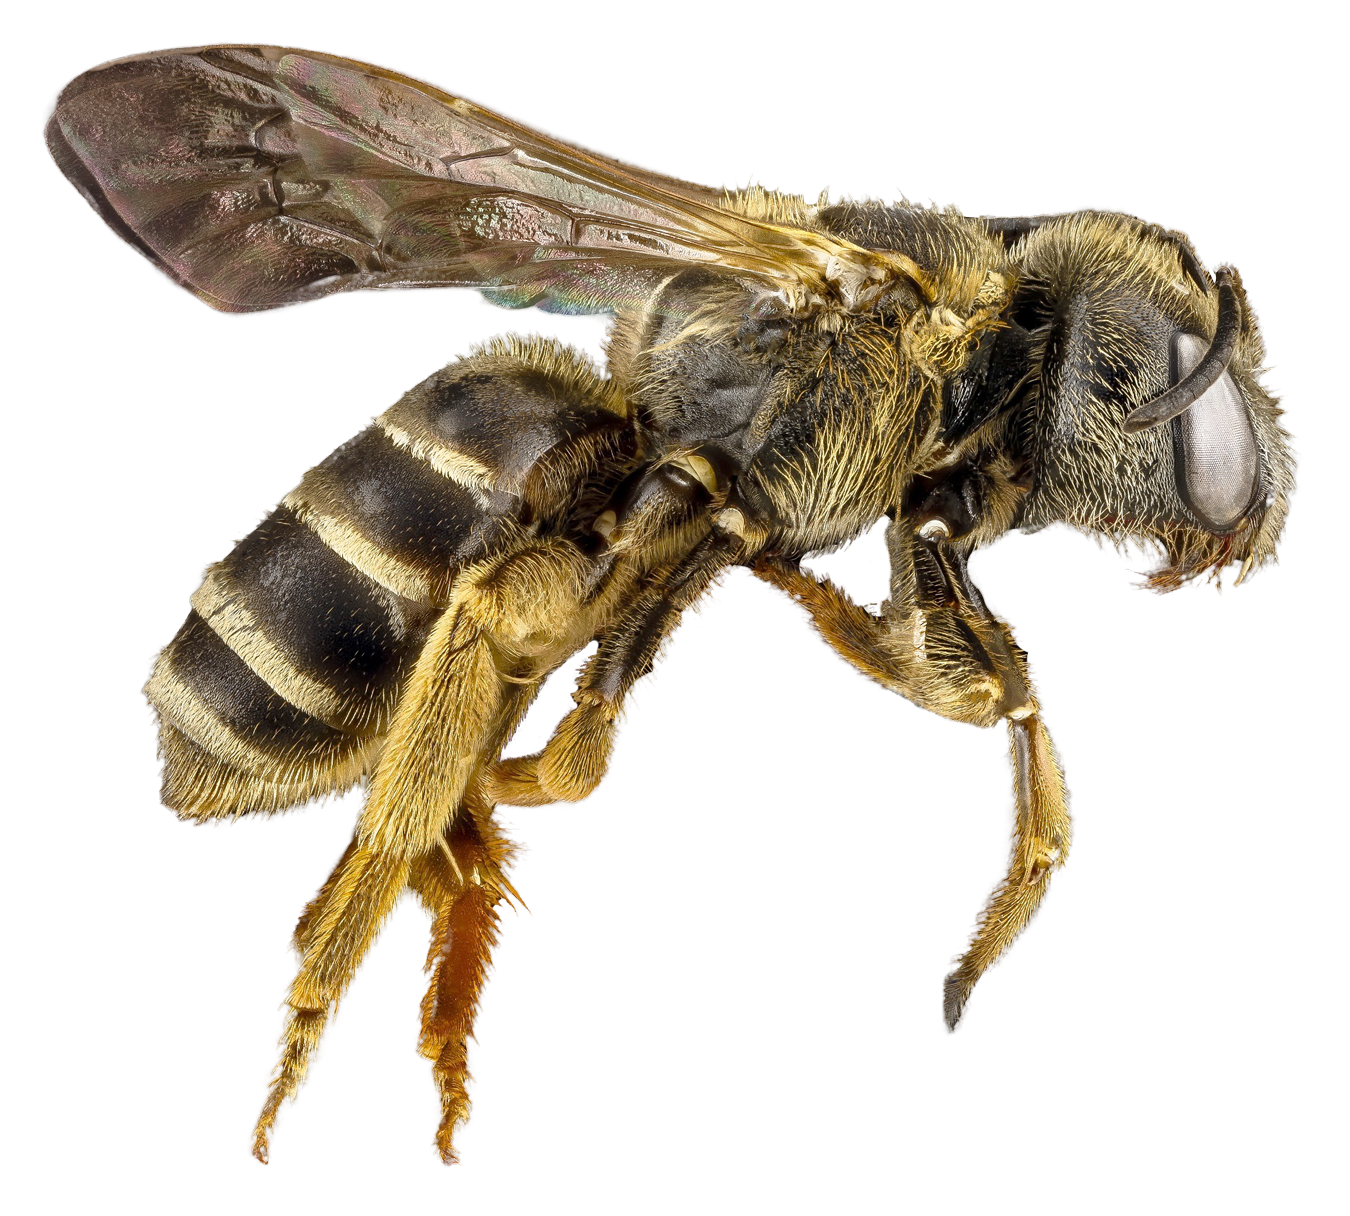 bee png transparent image pngpix #18937